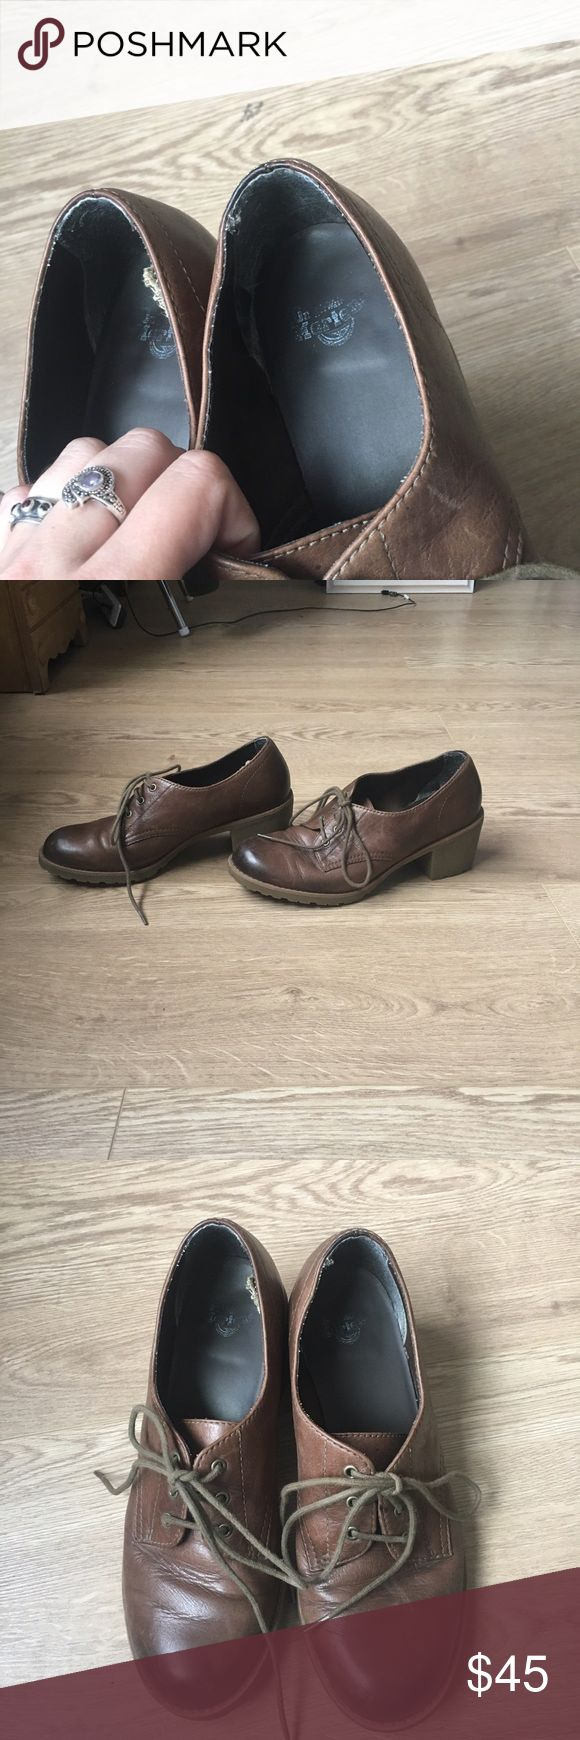 Brown Doc Marten Posy boots Never seen the style doc Martens before, can't find any for sale online so rare? Brown boots with a chunky heel. Has natural color distressing. Size 7 US. Minimal wear on soles. Dr. Martens Shoes Ankle Boots & Booties